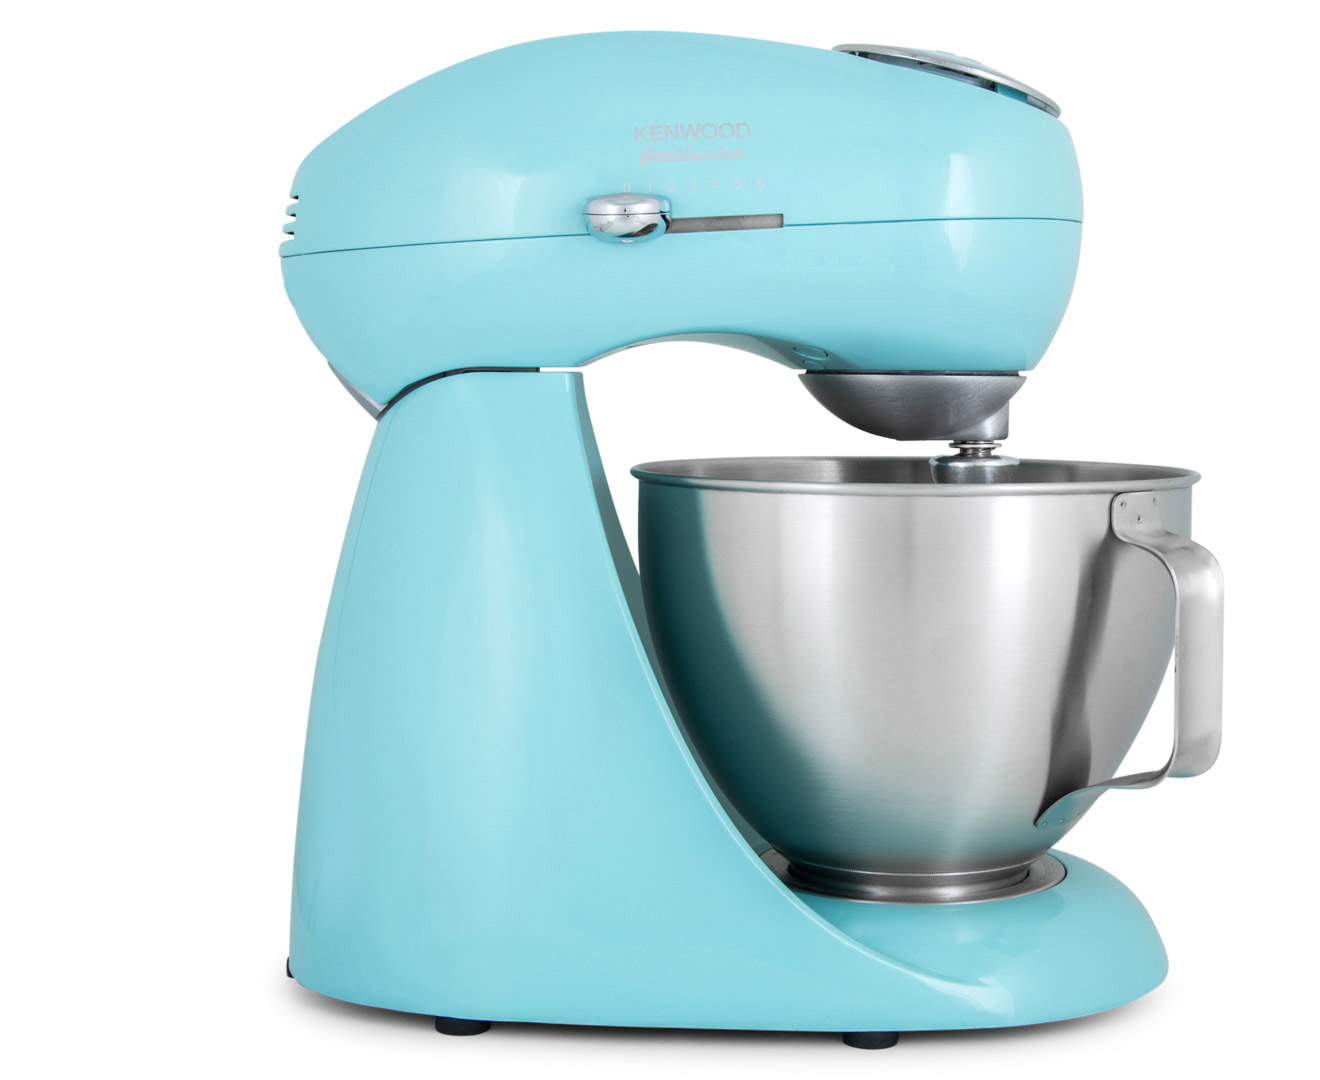 Kenwood MX323 Patissier Stand Mixer - Teal   Great daily ...